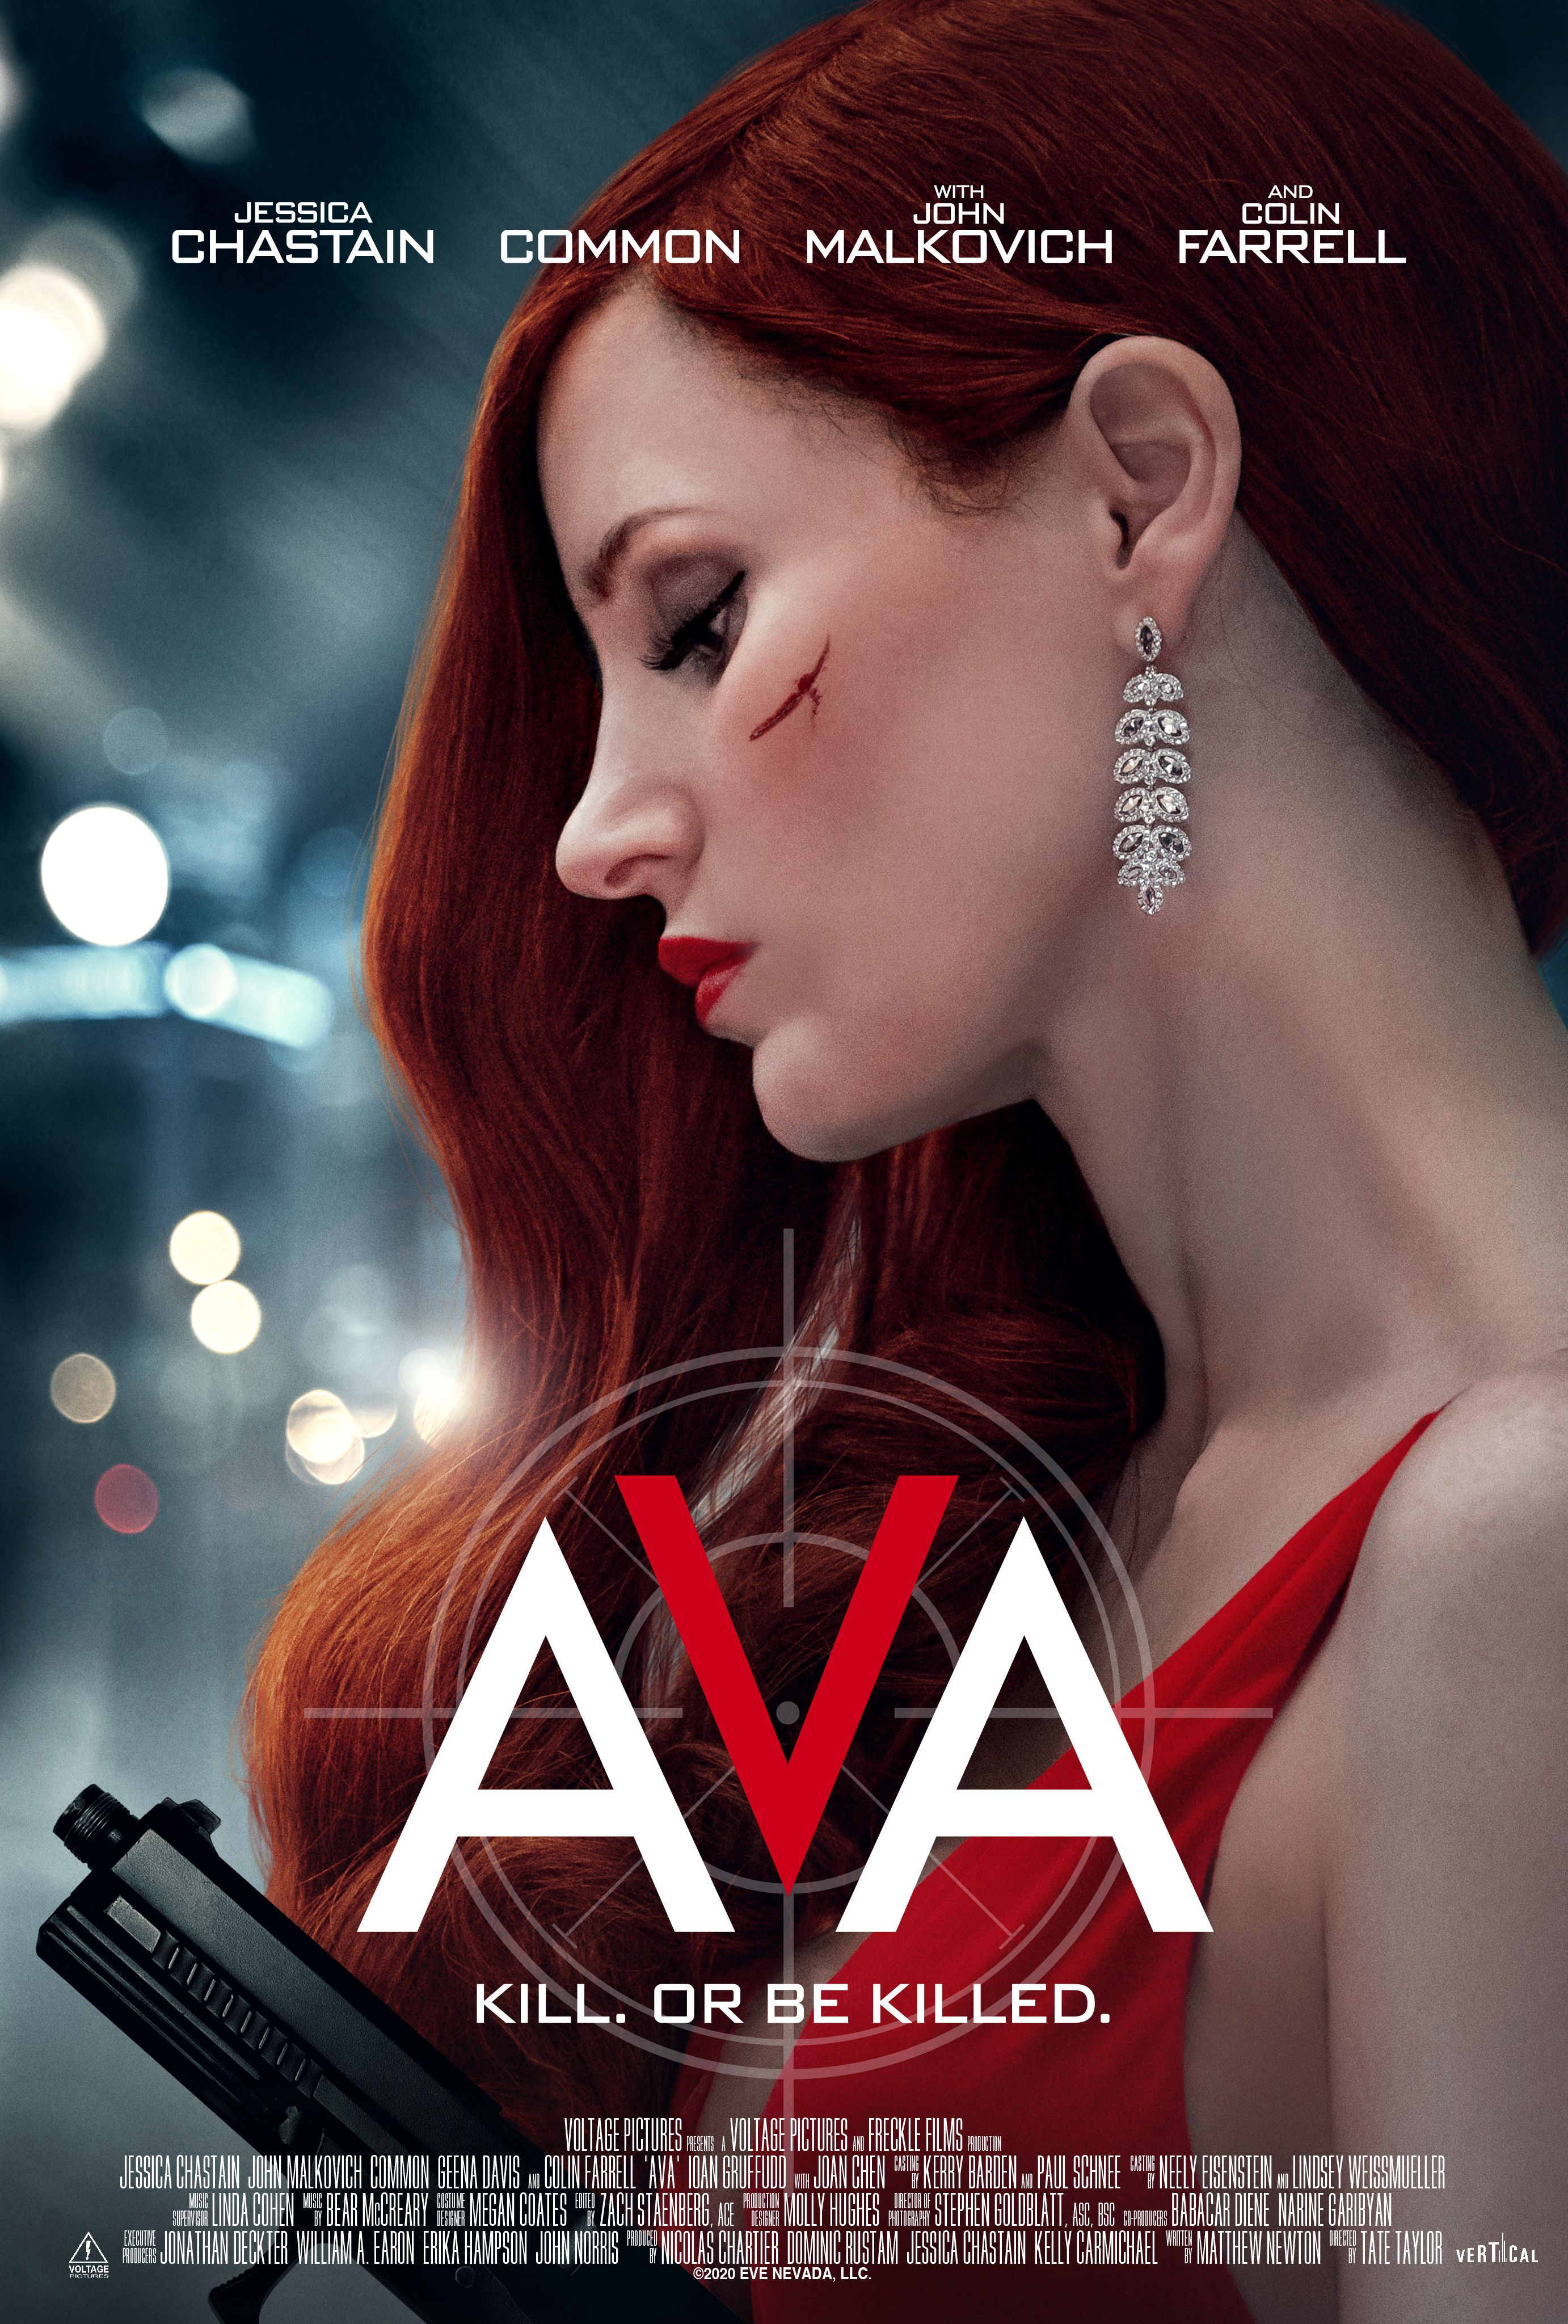 Ava movie - Jessica Chastain in 2020 | Jessica chastain, Movie stars, Free  movies online